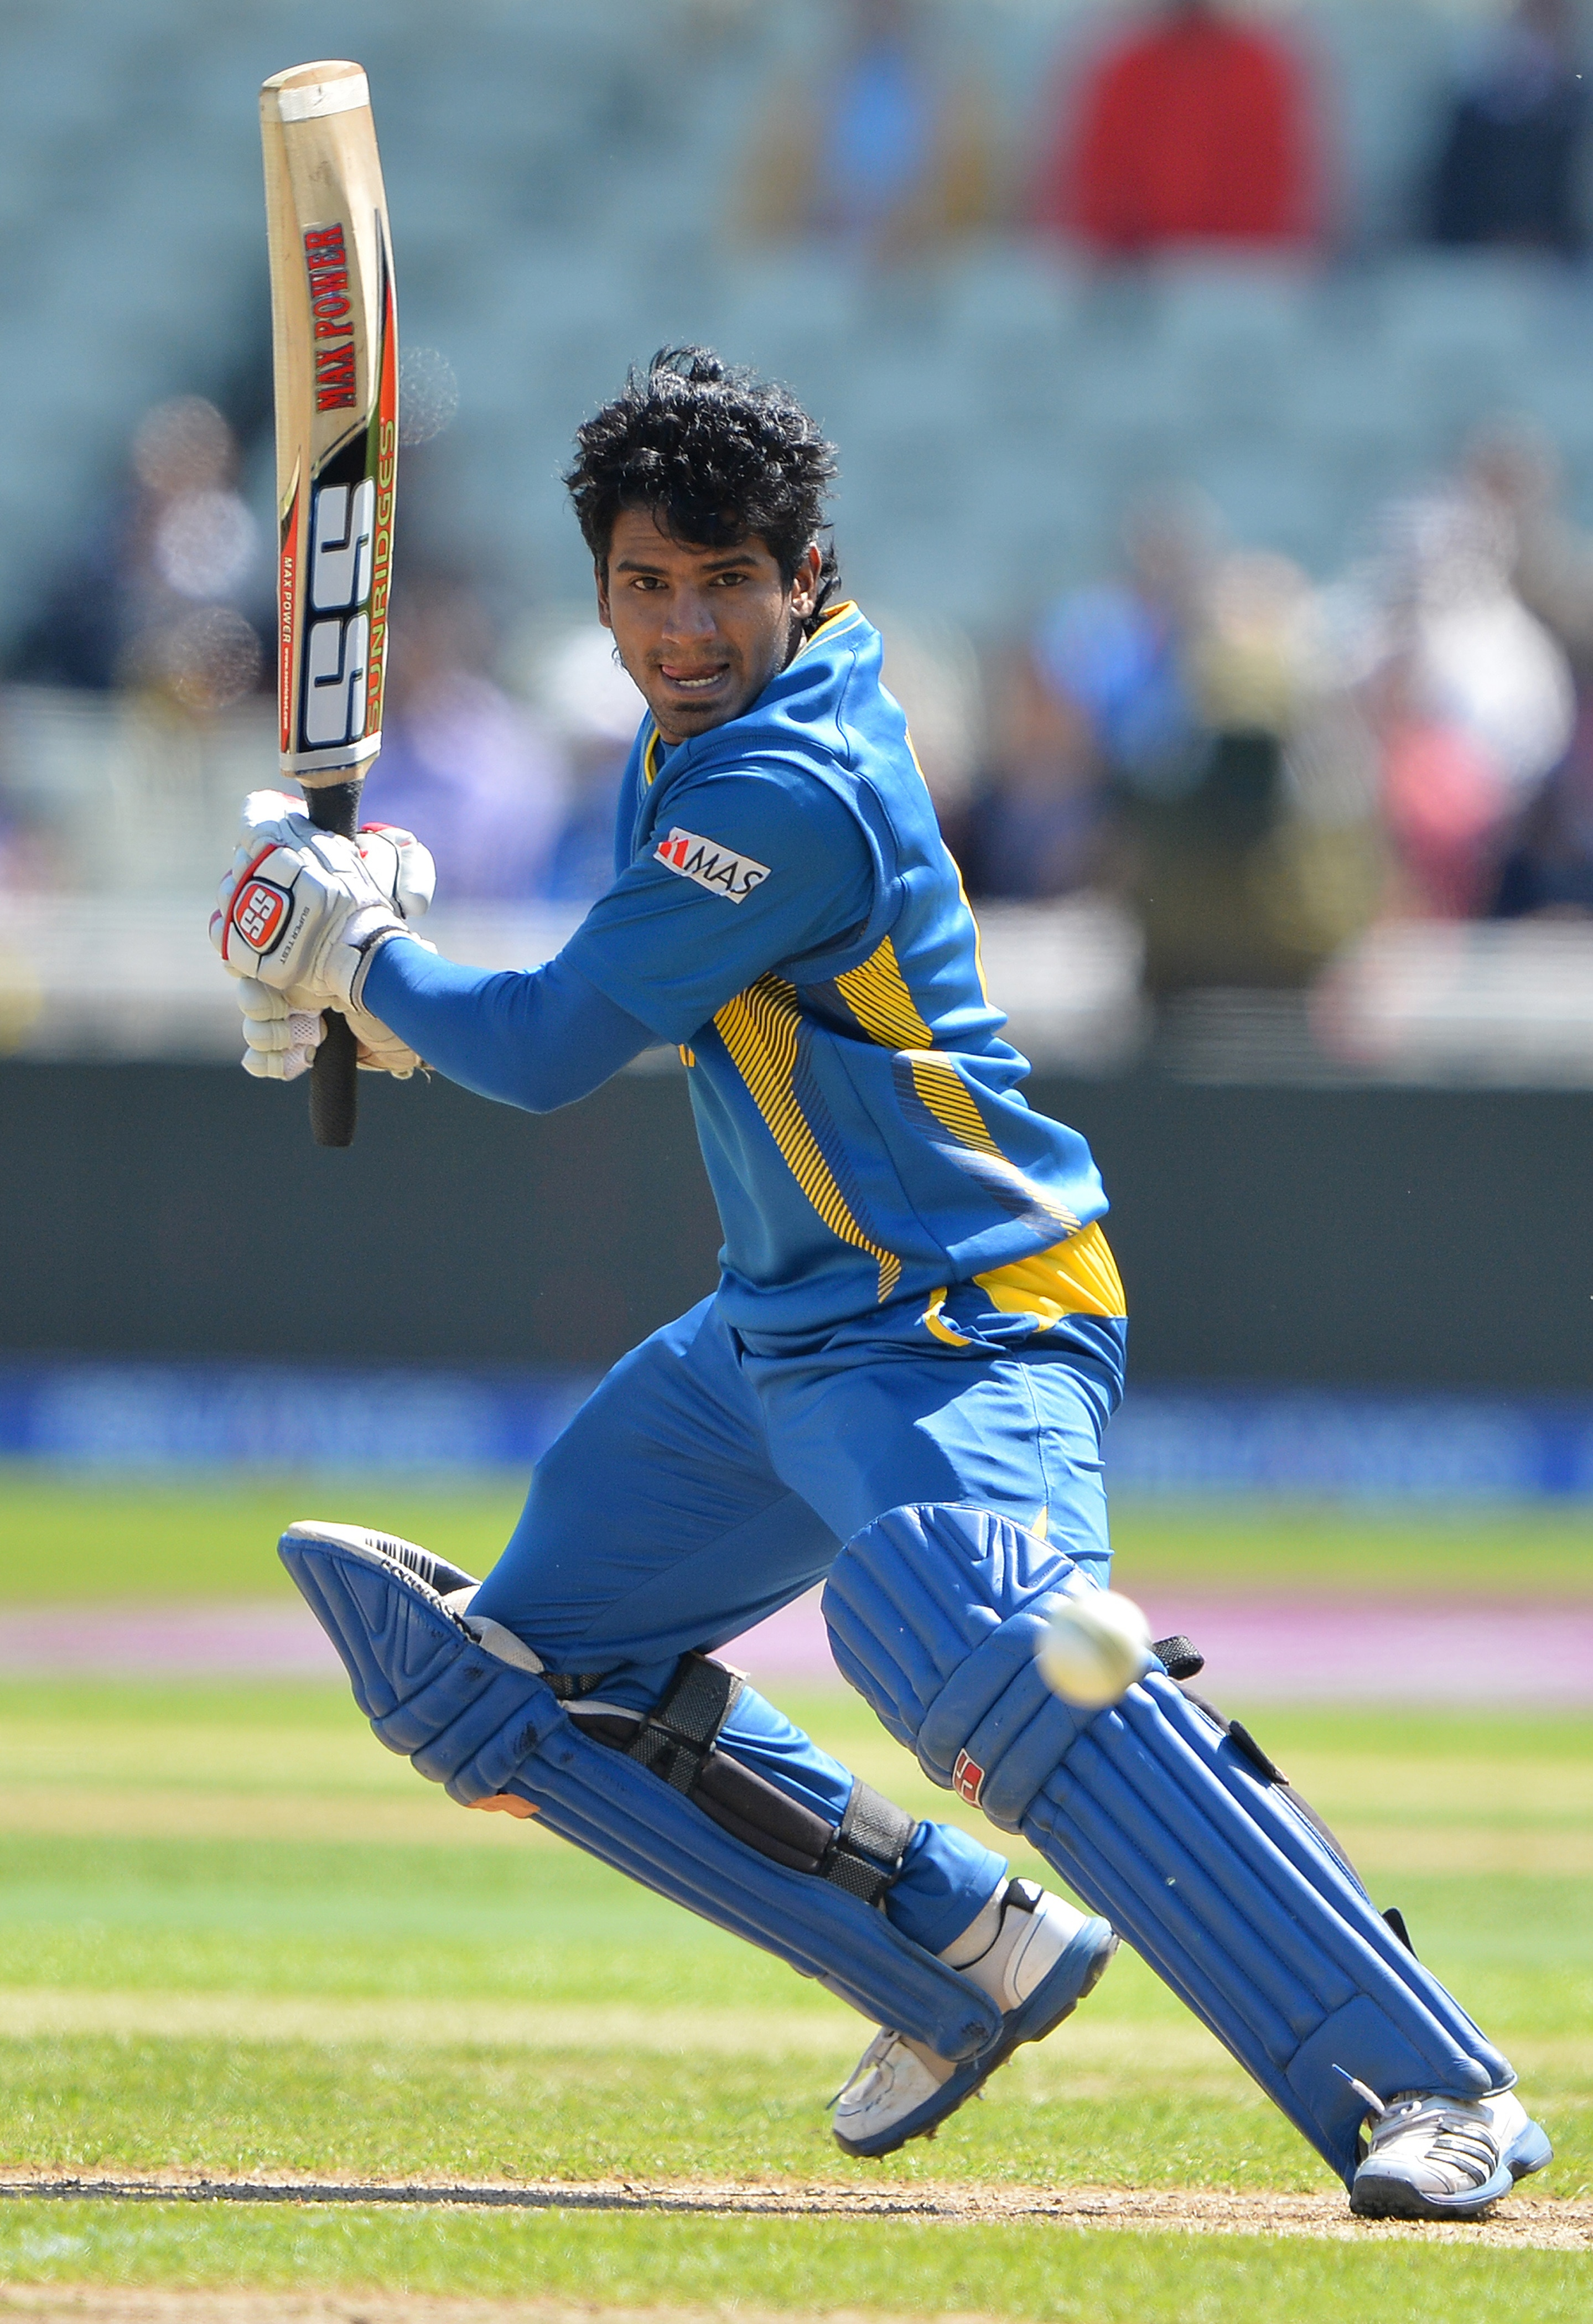 Kusal Janith Perera was severe on the Indian bowlers, who failed to find their line and length early on in the innings after MS Dhoni won the toss. Perera hit 82 from 94 balls with 7 fours and 3 sixes before being retired out. (All AFP images)